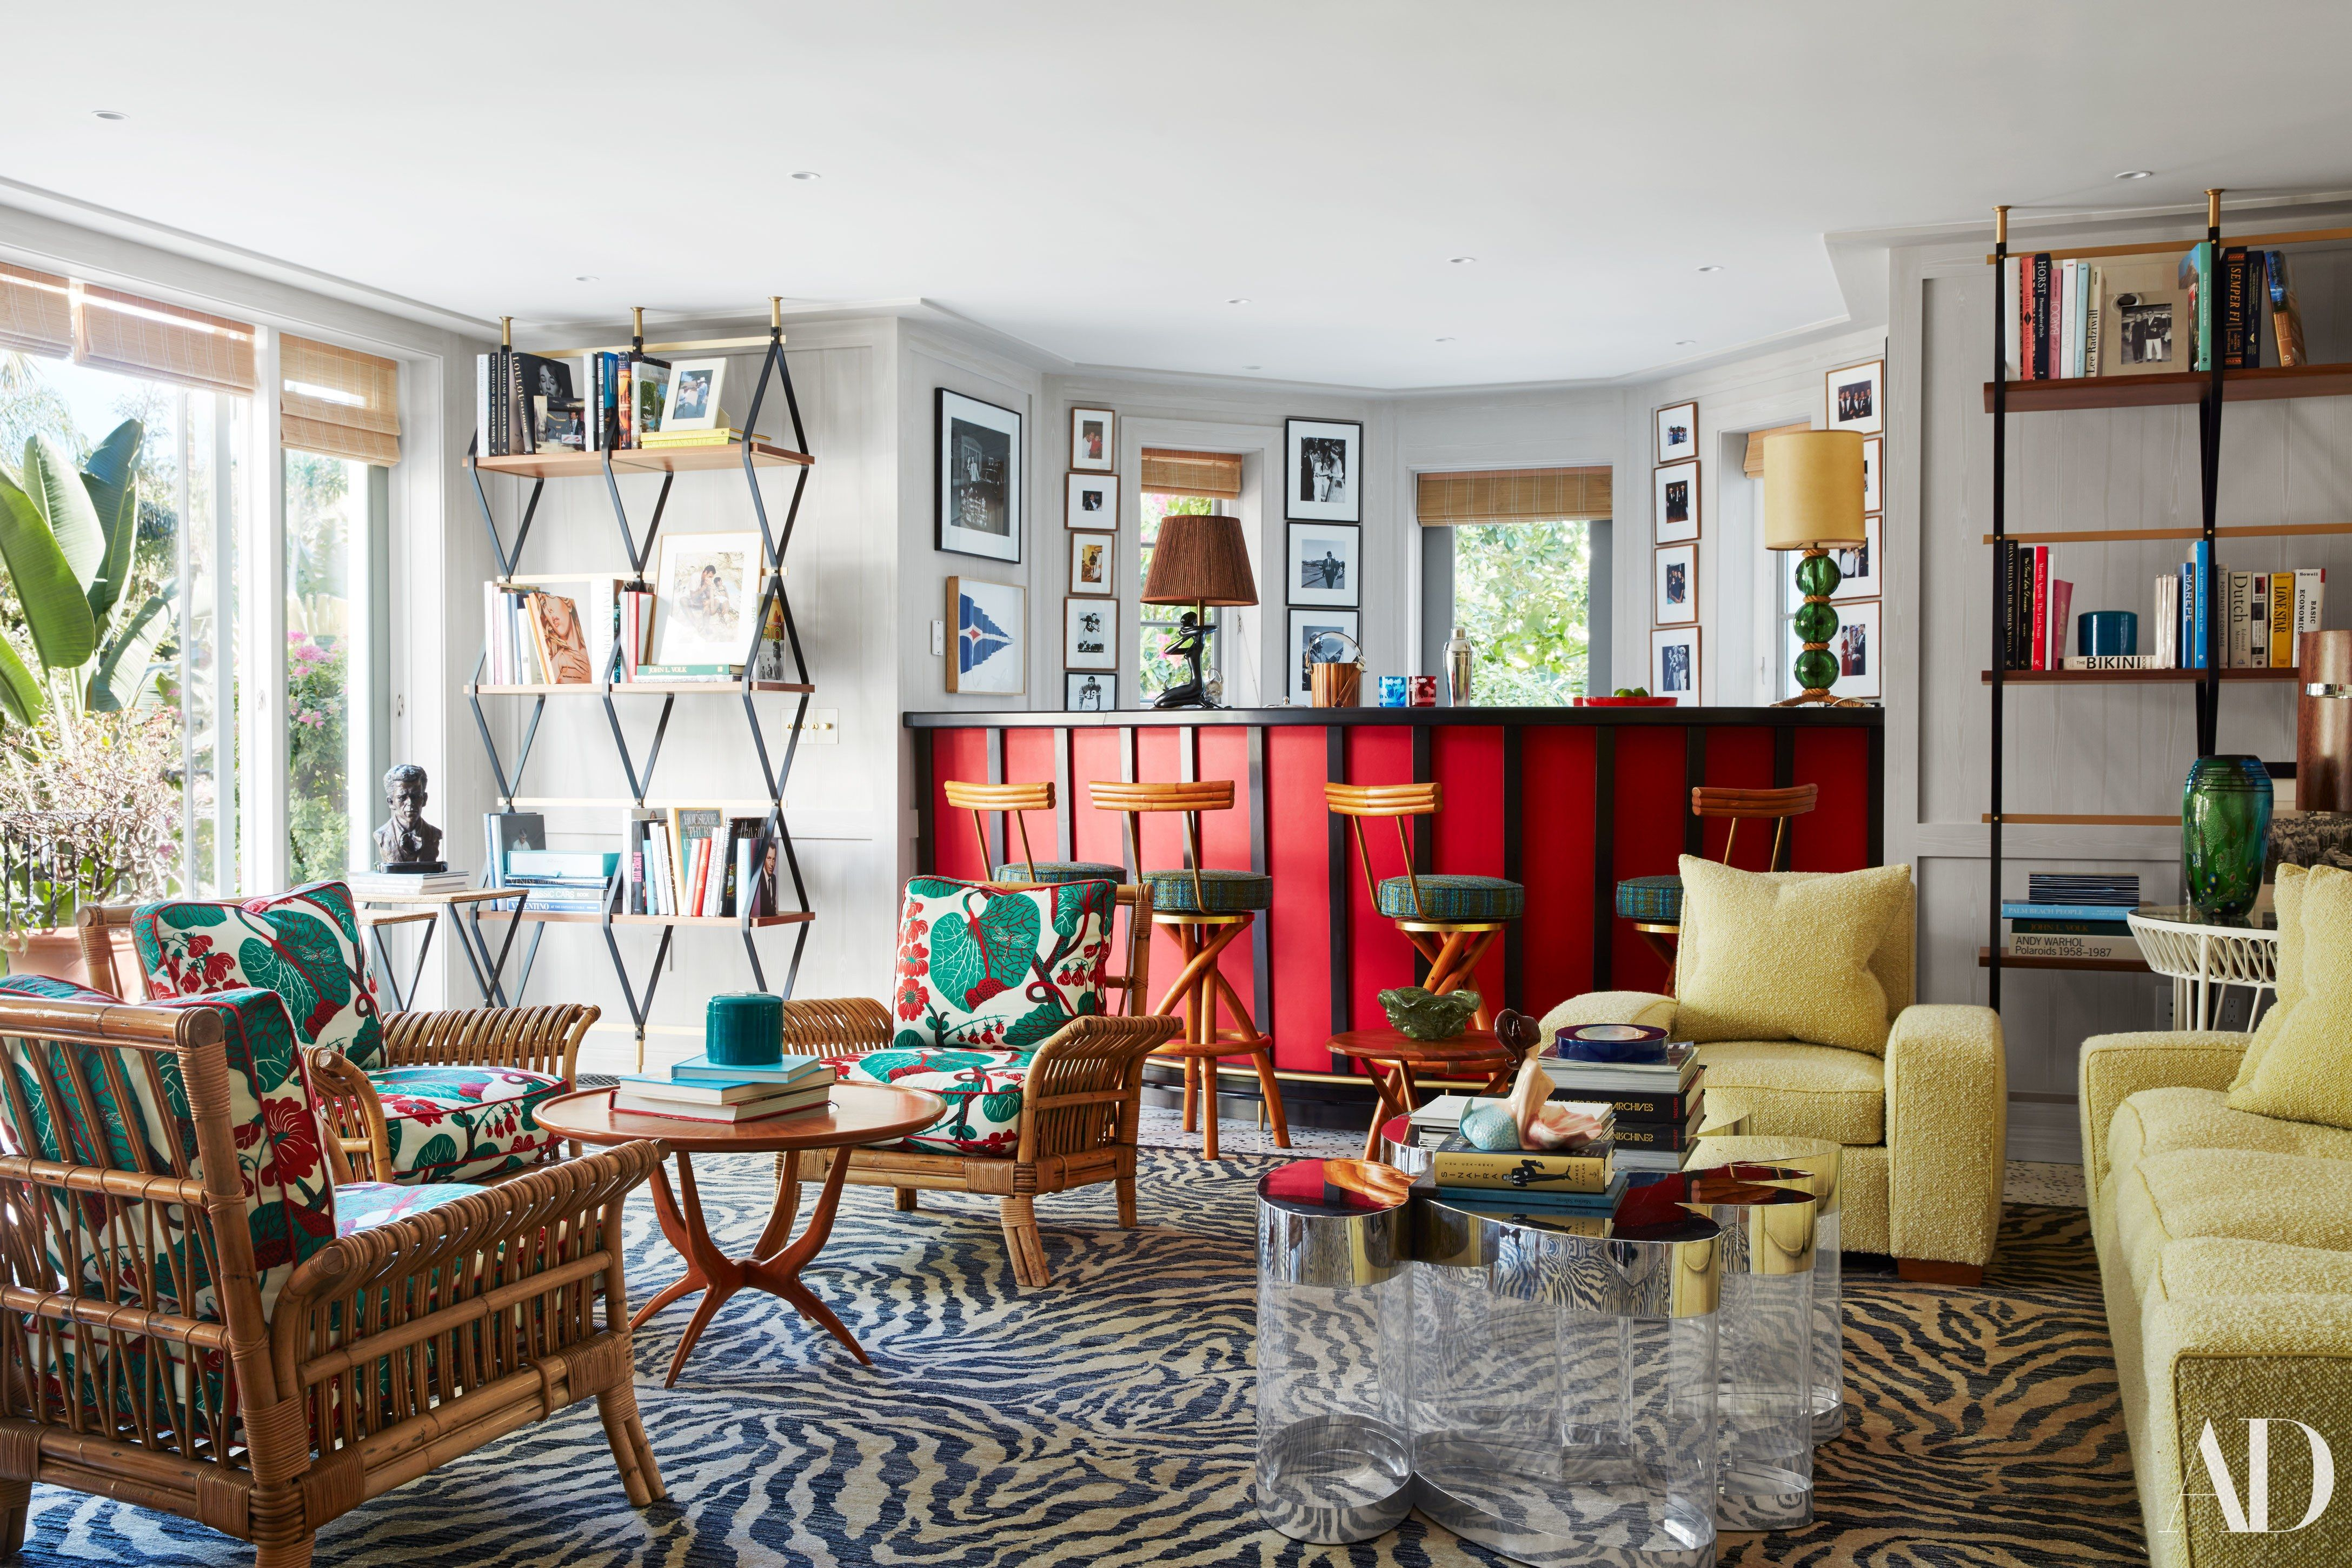 Enter The Vibrantly Revived Florida Home With Images Home